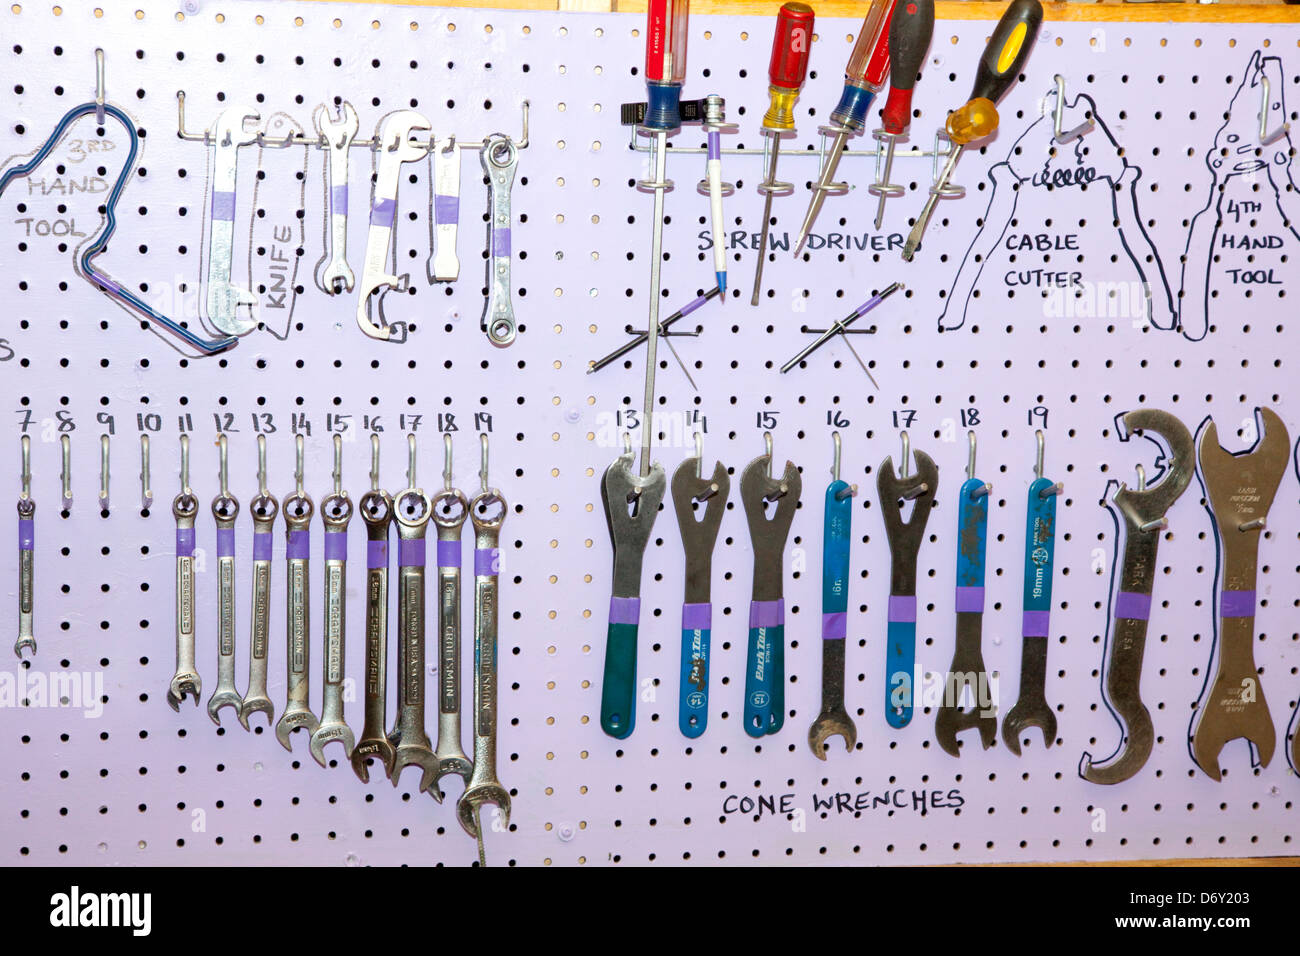 Pegboard tool rack of wrenches and screwdrivers at Youth Express bike repair shop. St Paul Minnesota MN USA - Stock Image